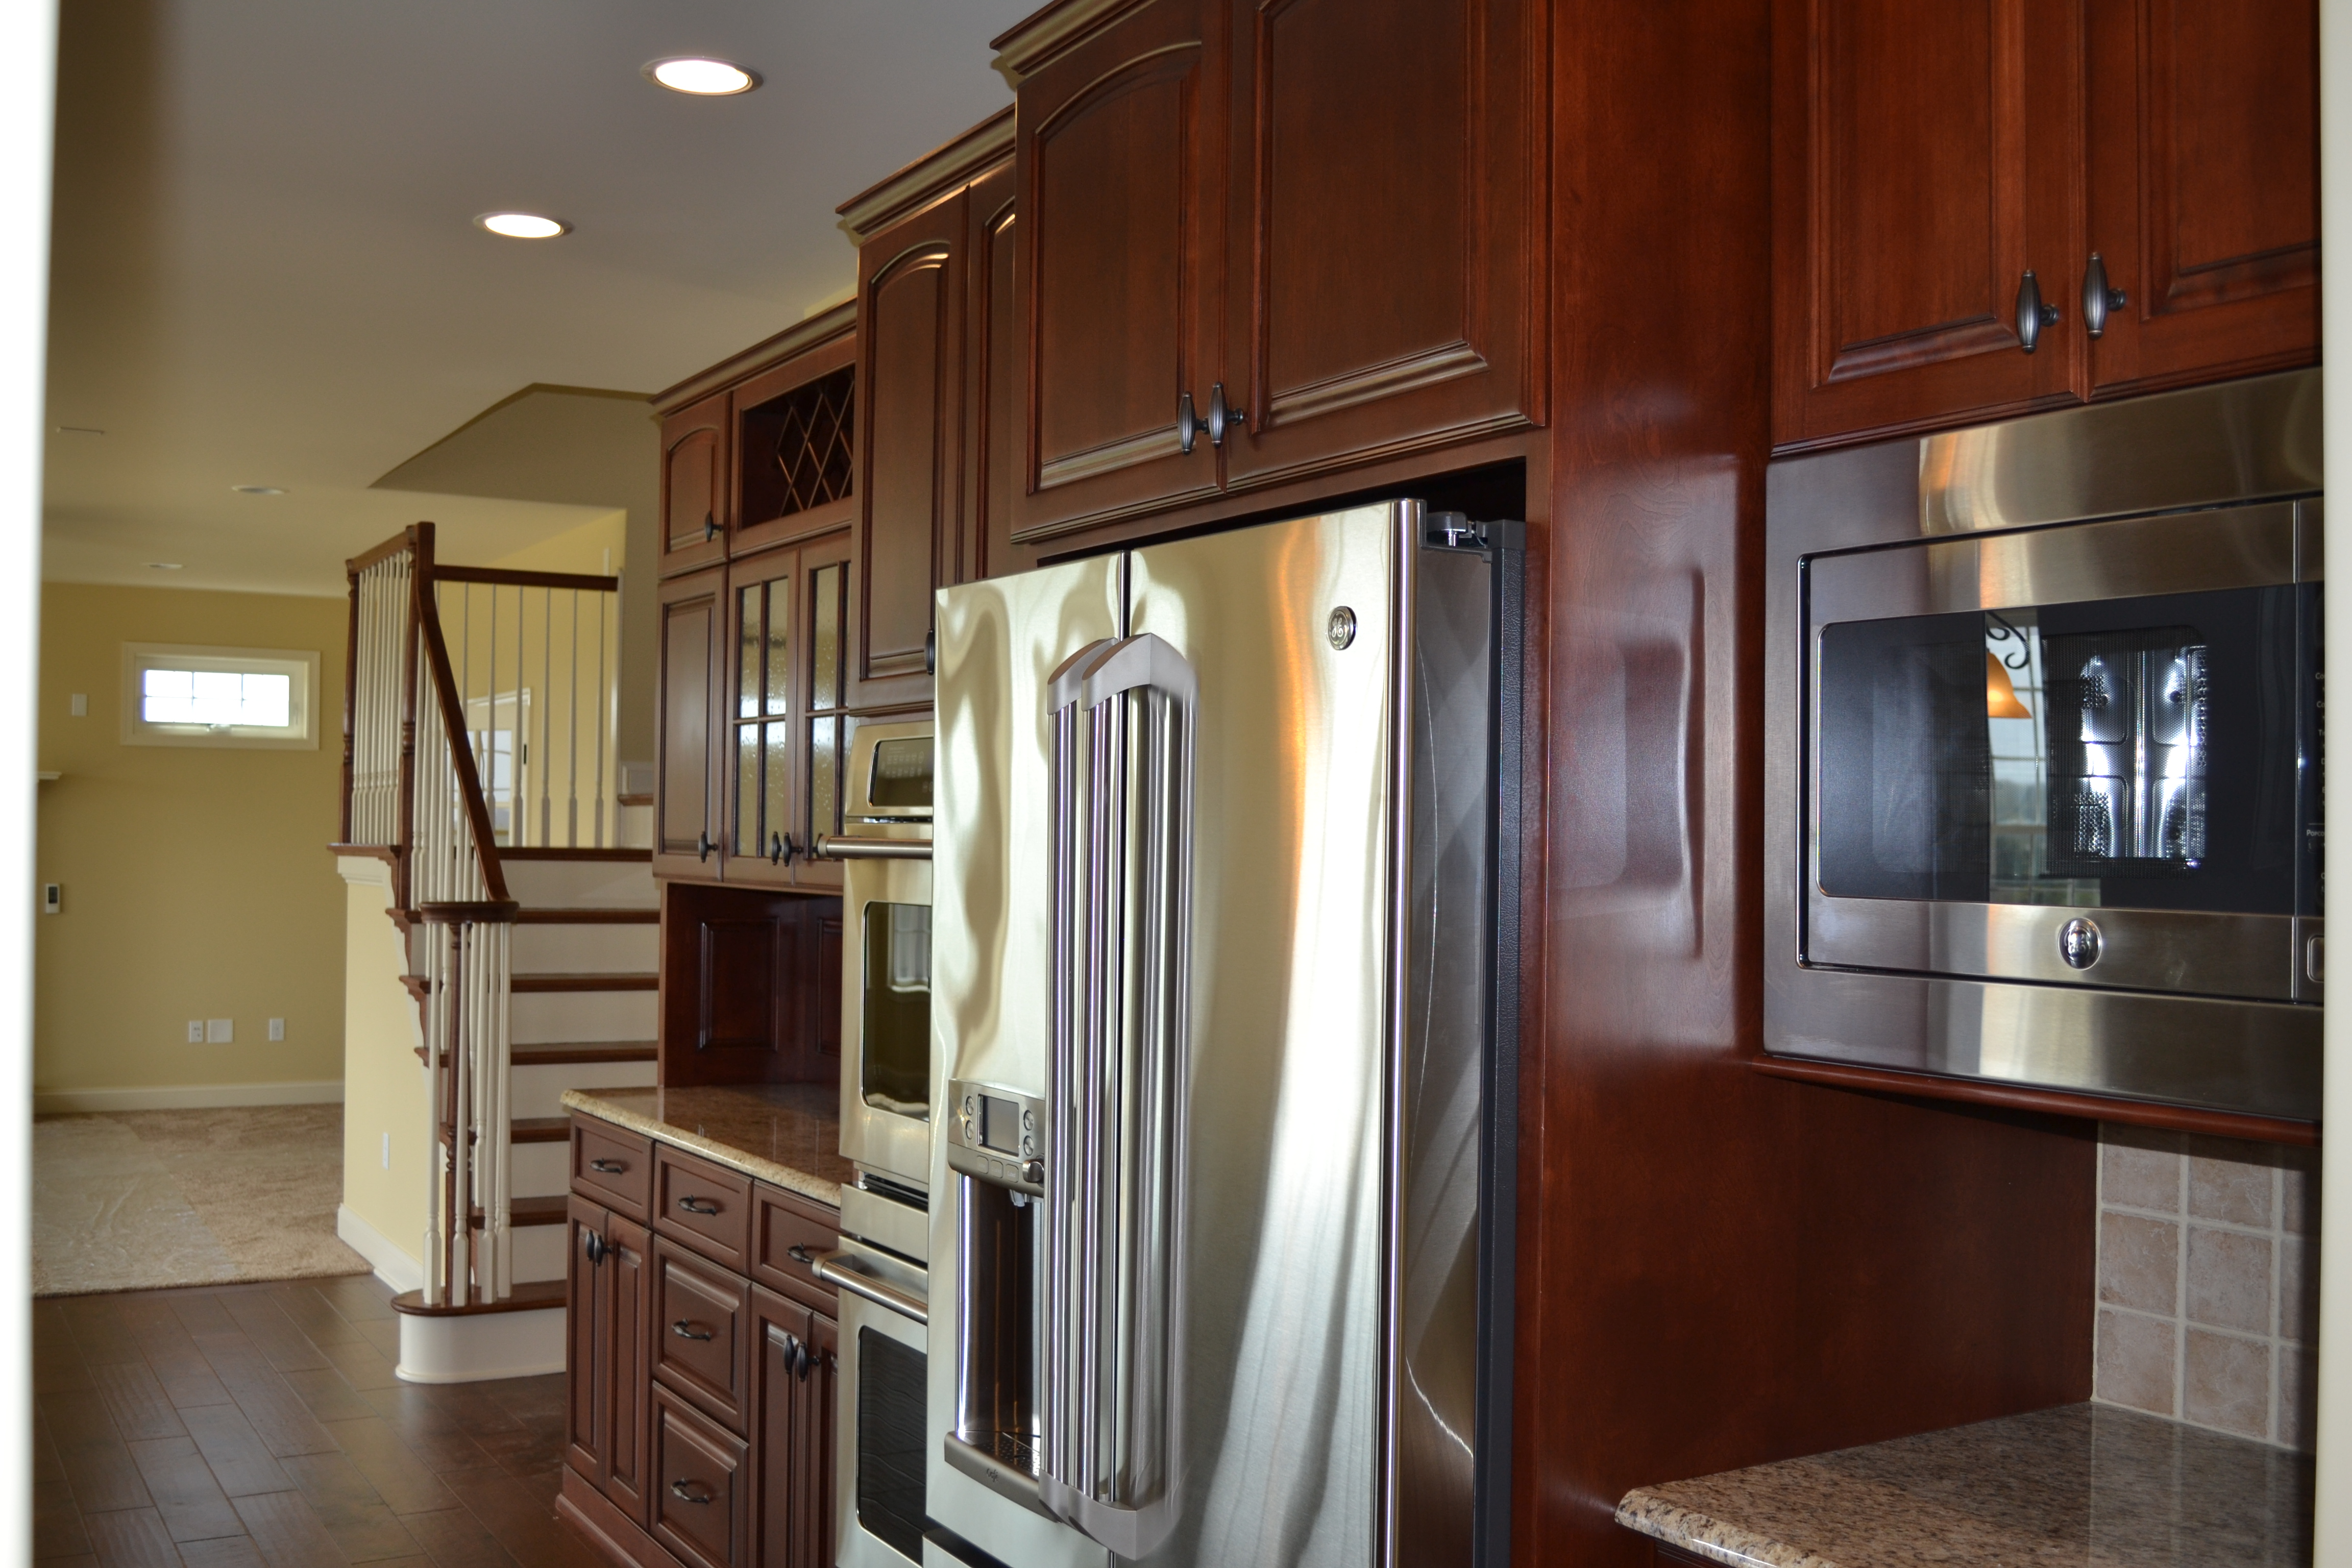 jlh inc custom home 3 kitchen remodeling york pa Custom kitchen in home built by Jeffrey L Henry Inc of York